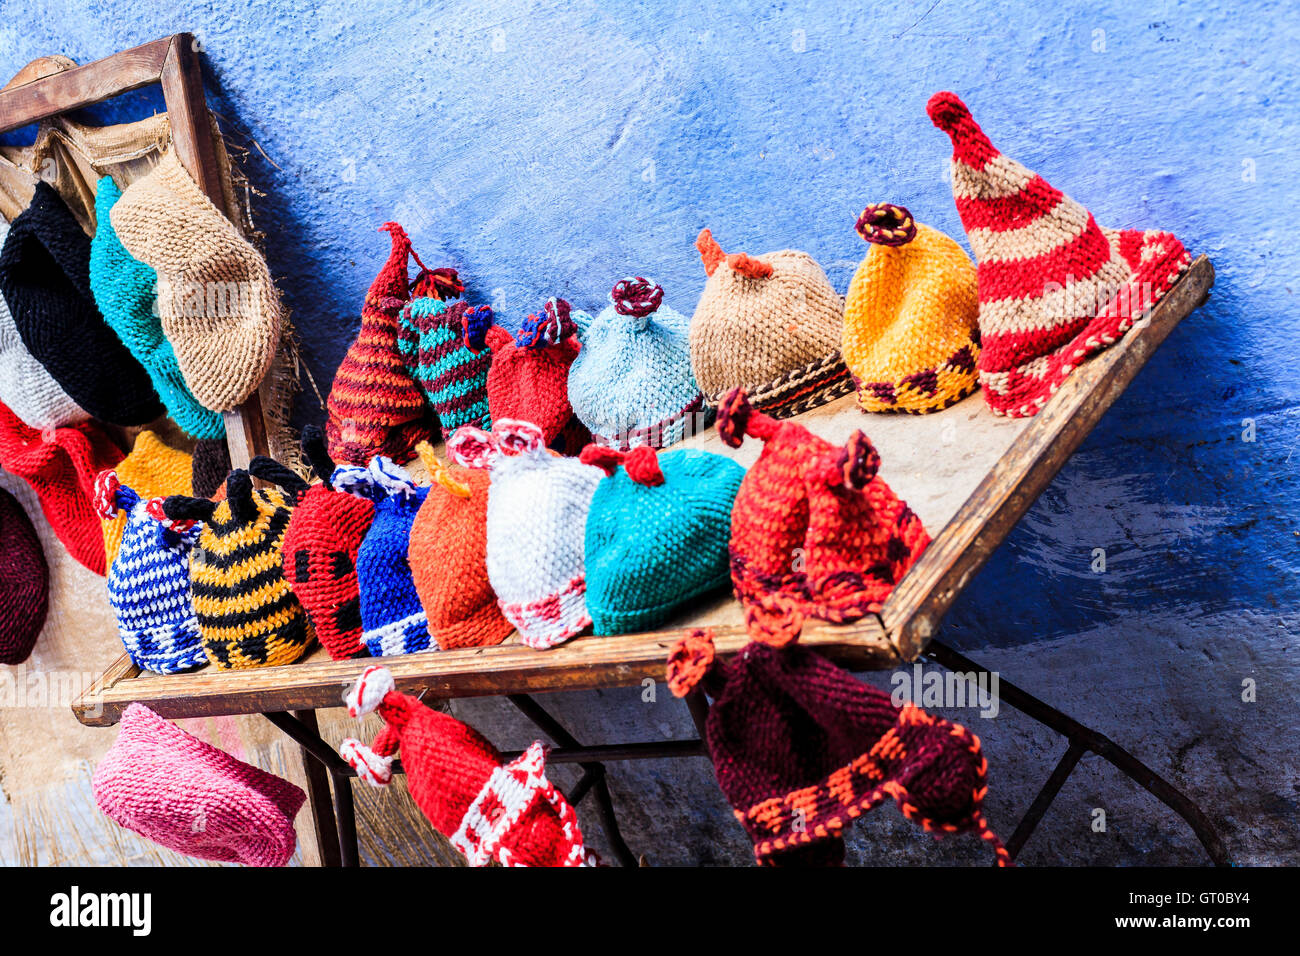 Colorful funny hats for sale in a flea market Stock Photo  118023336 ... 54a82522939